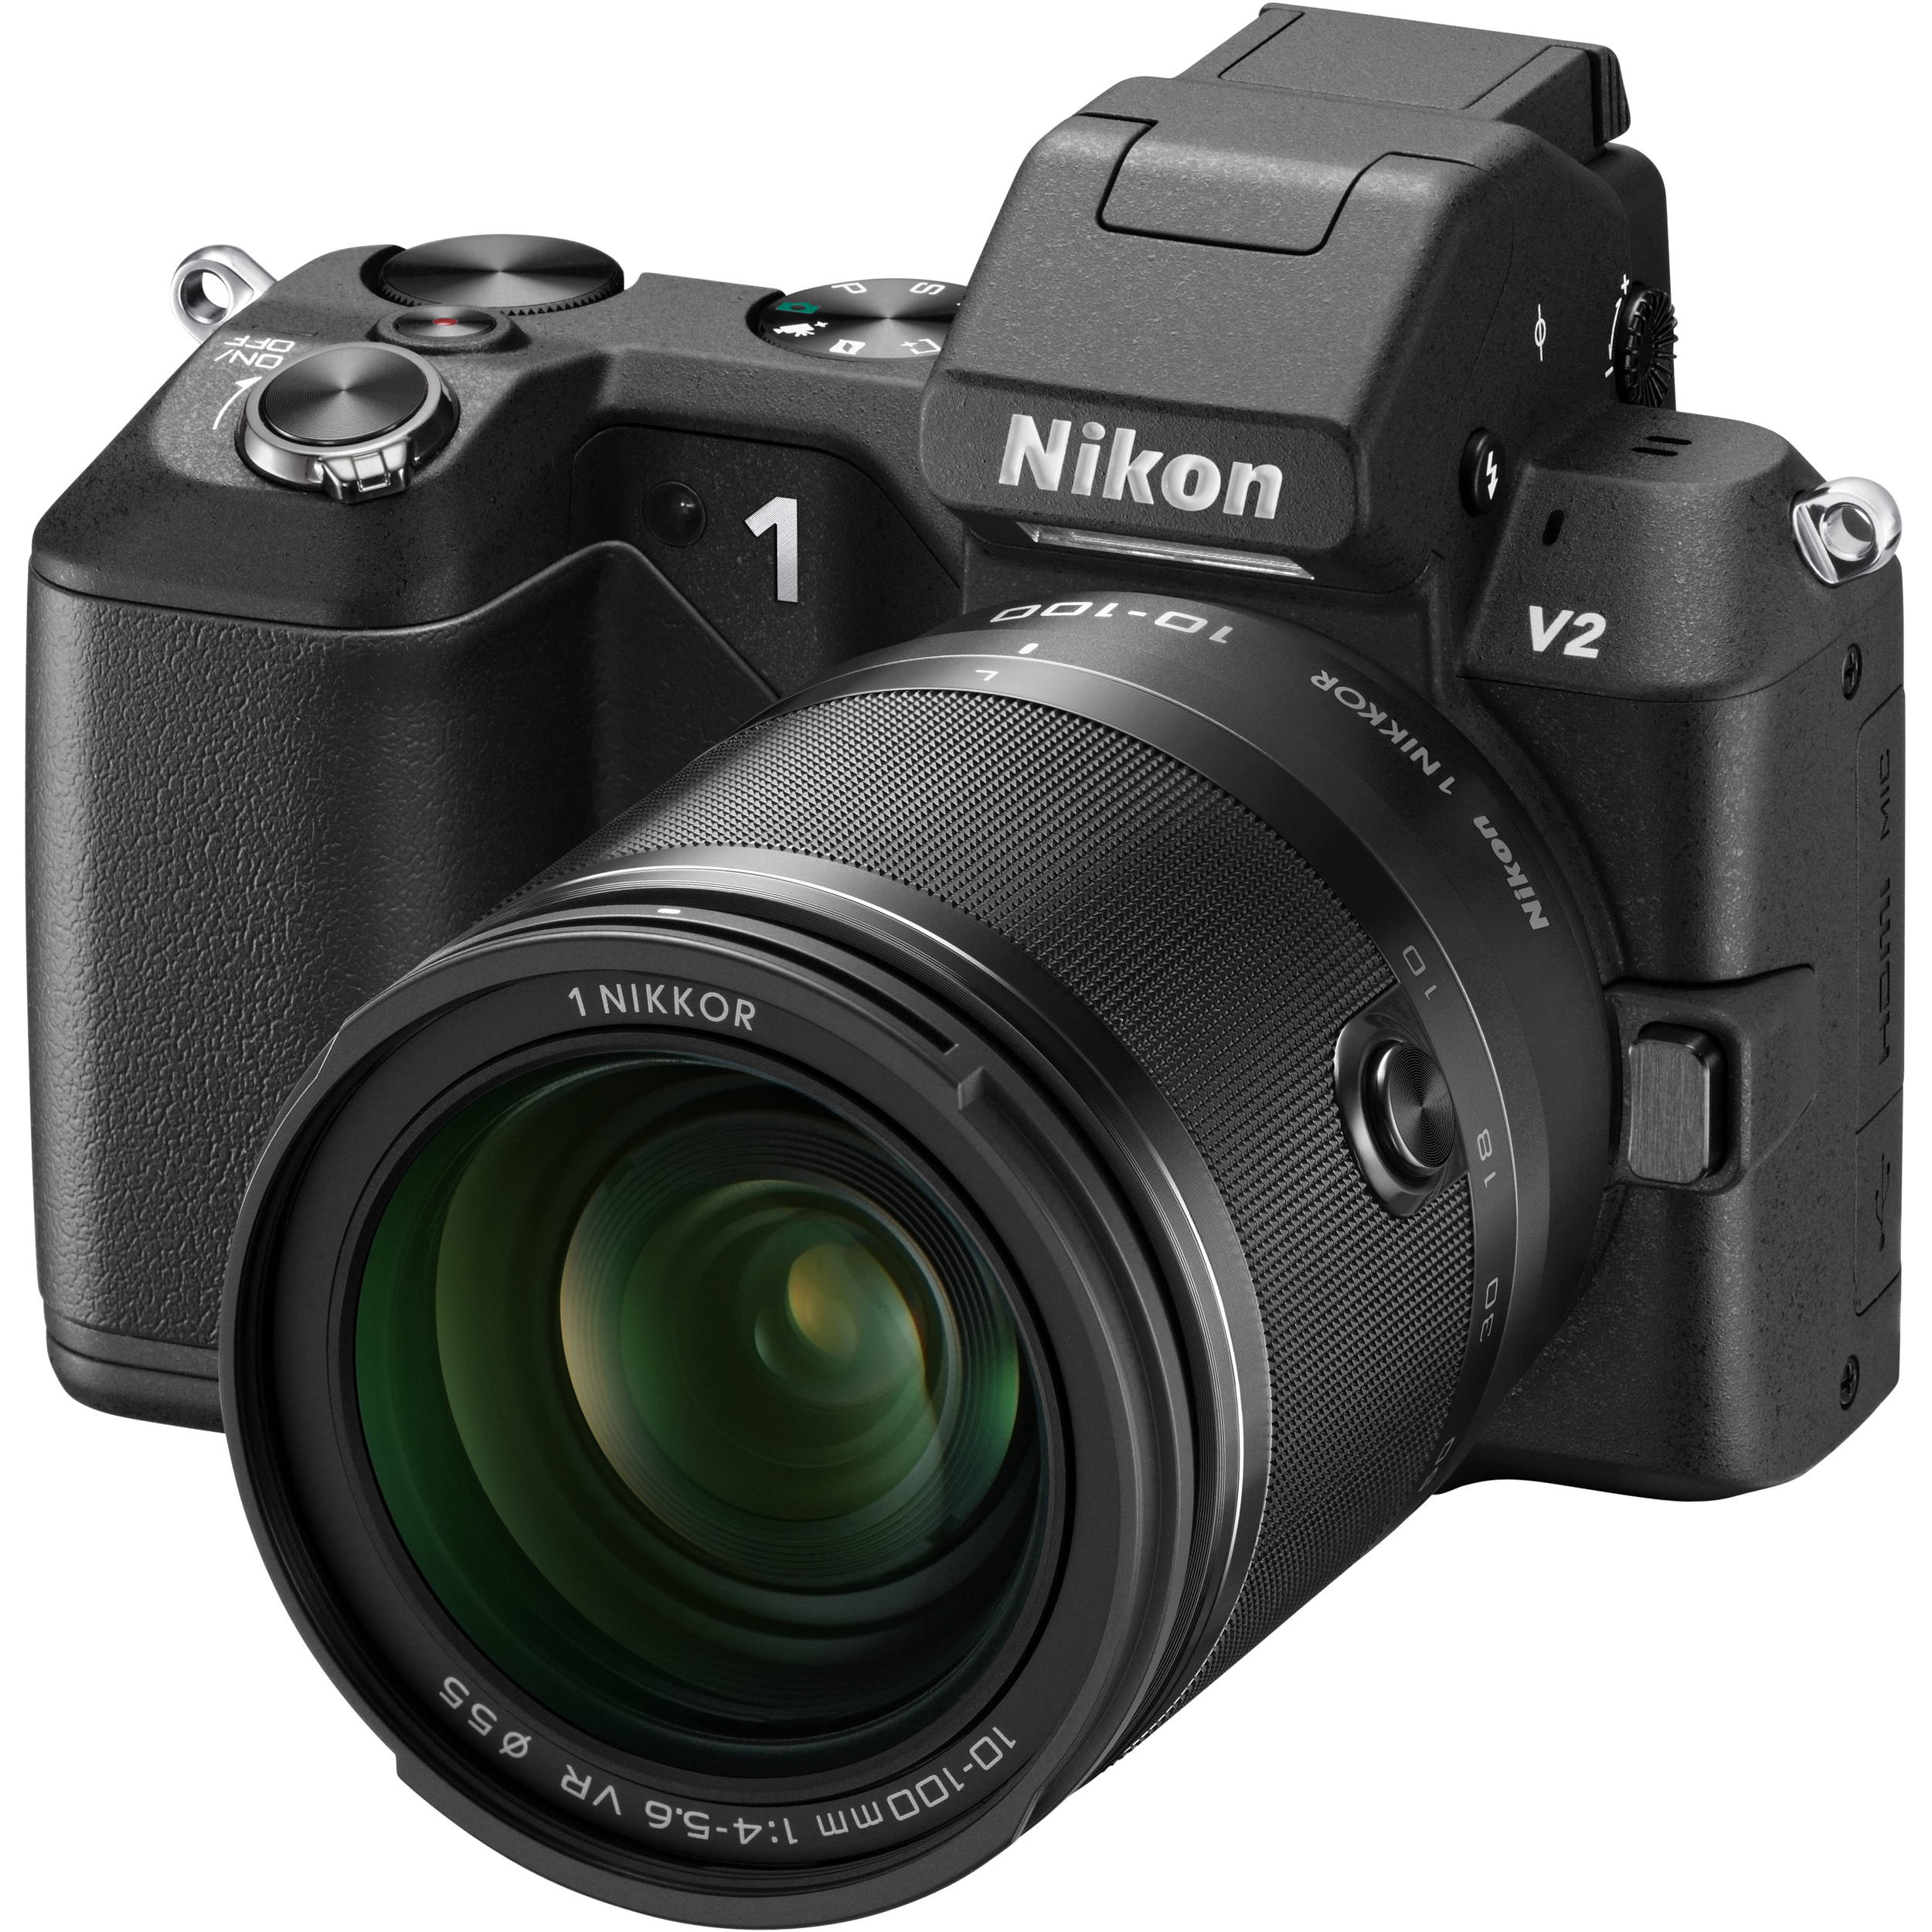 Nikon 1 V2 Digital Camera Drivers